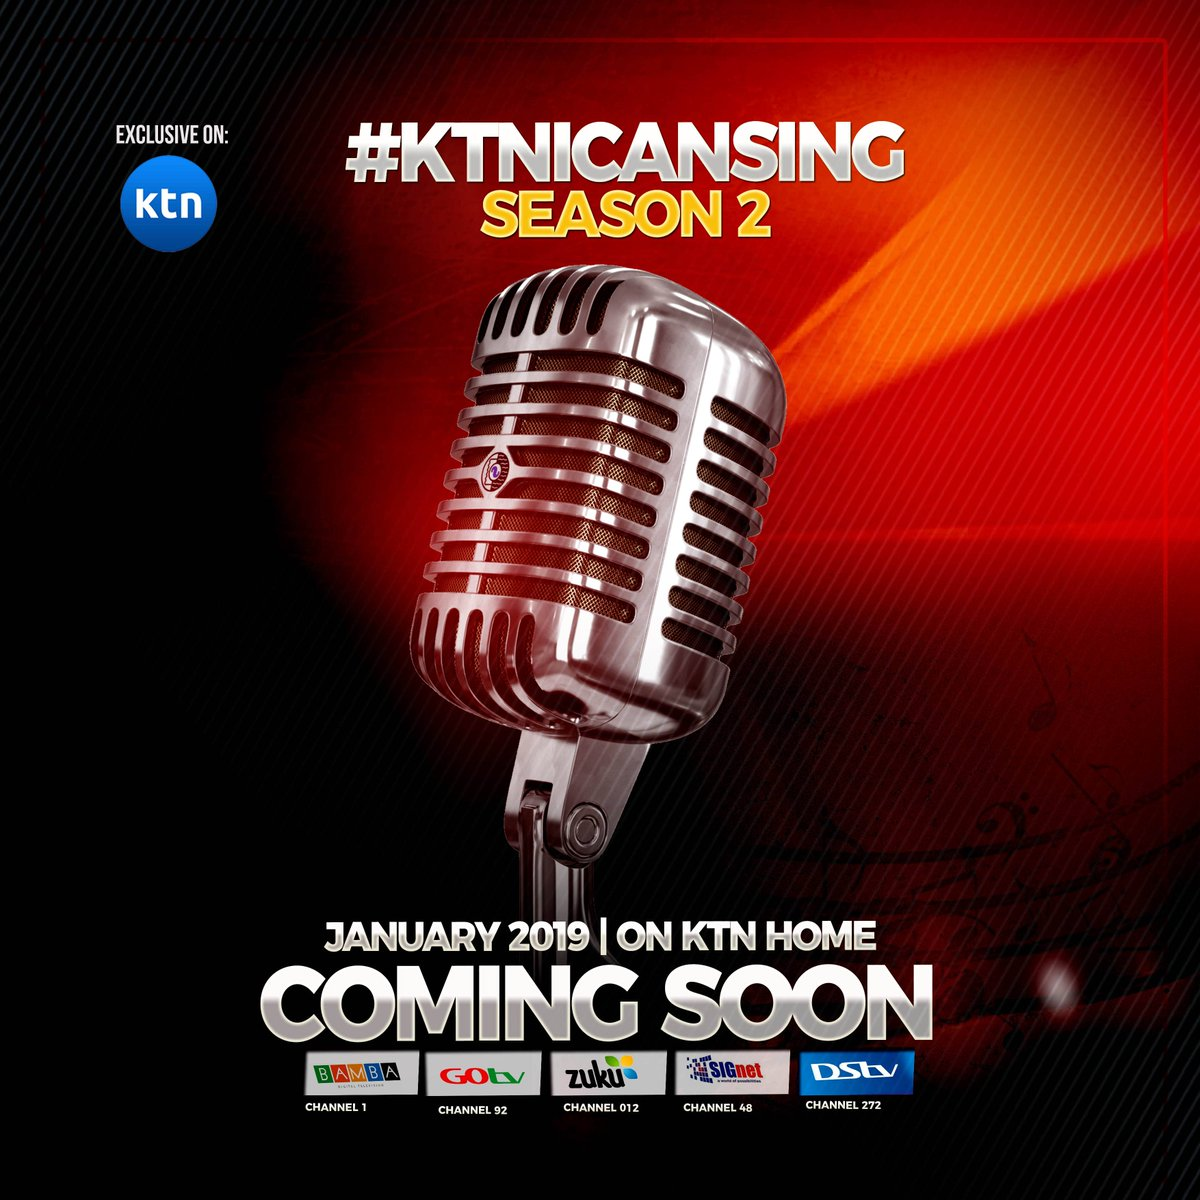 Be sure to catch all the drama and action of #ktnicansing season 2